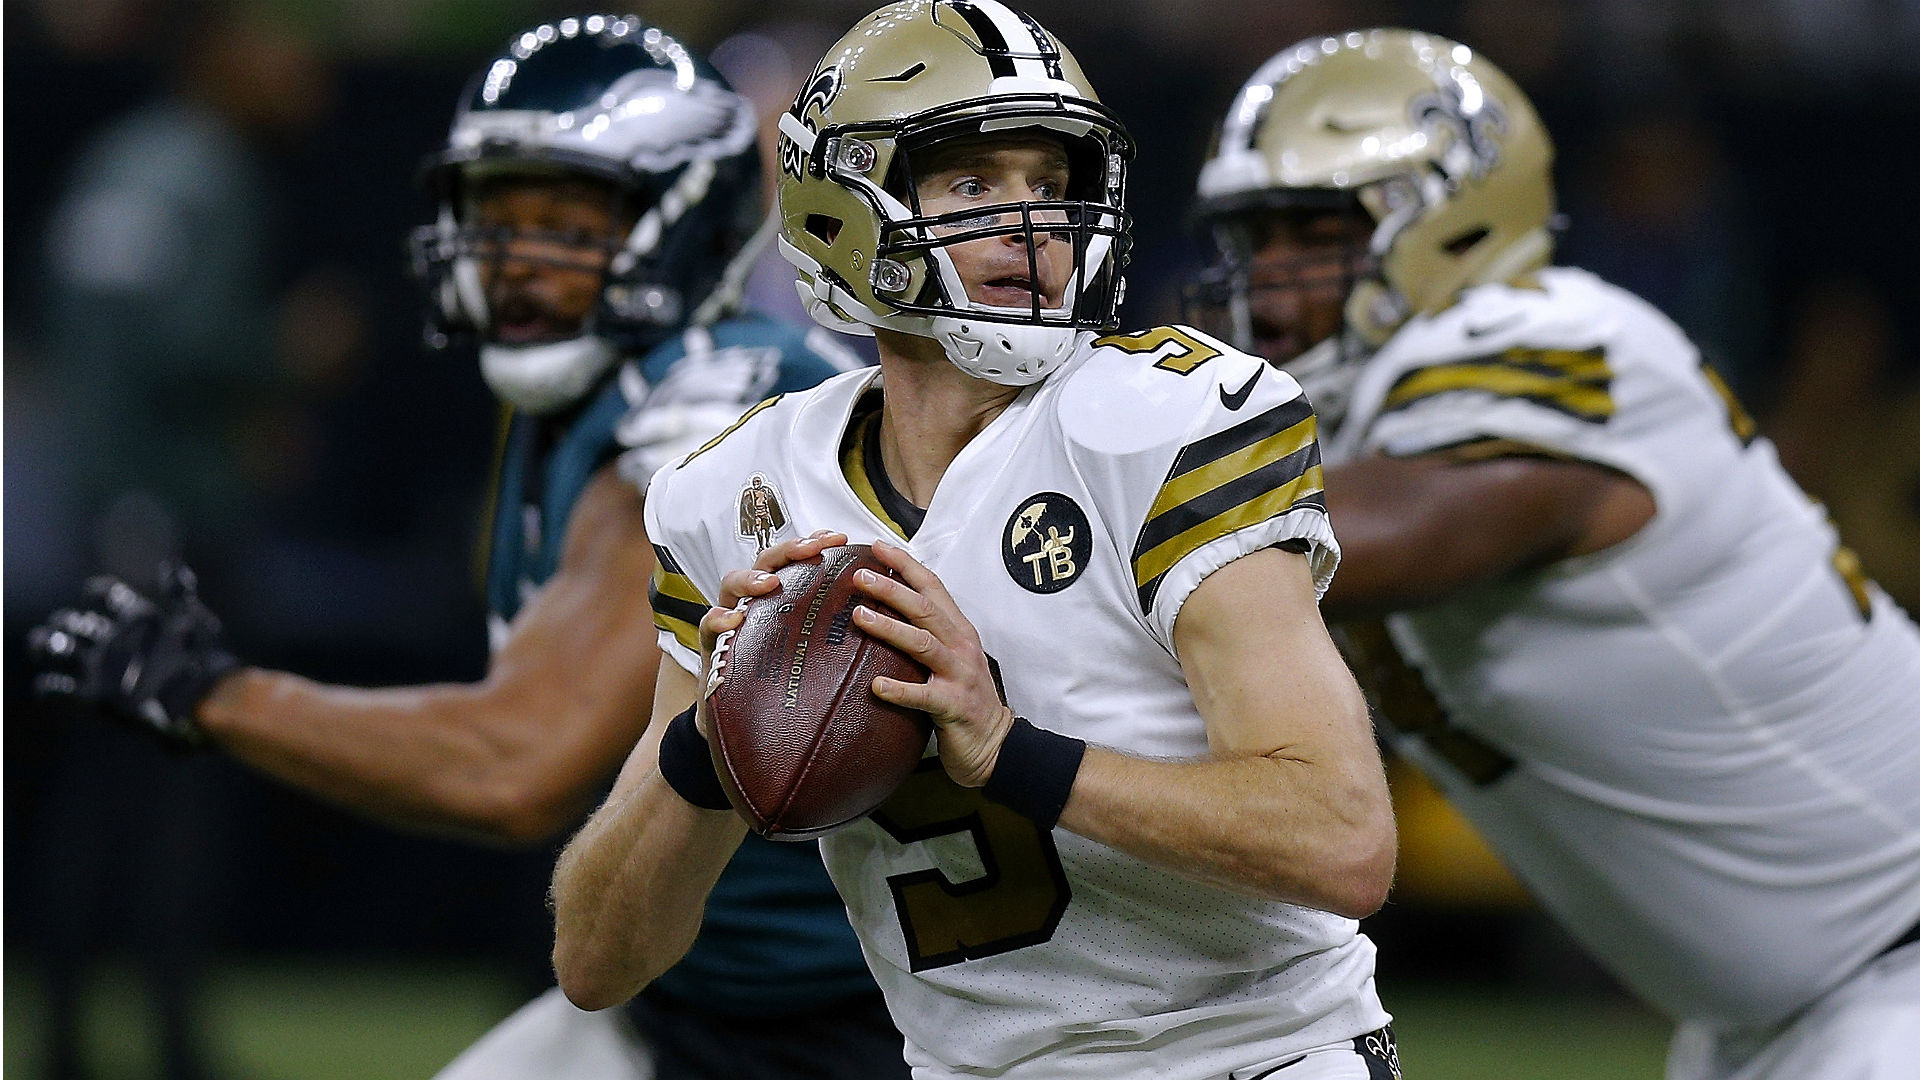 Saints pull away for blowout victory over Eagles, extend winning-streak to 9